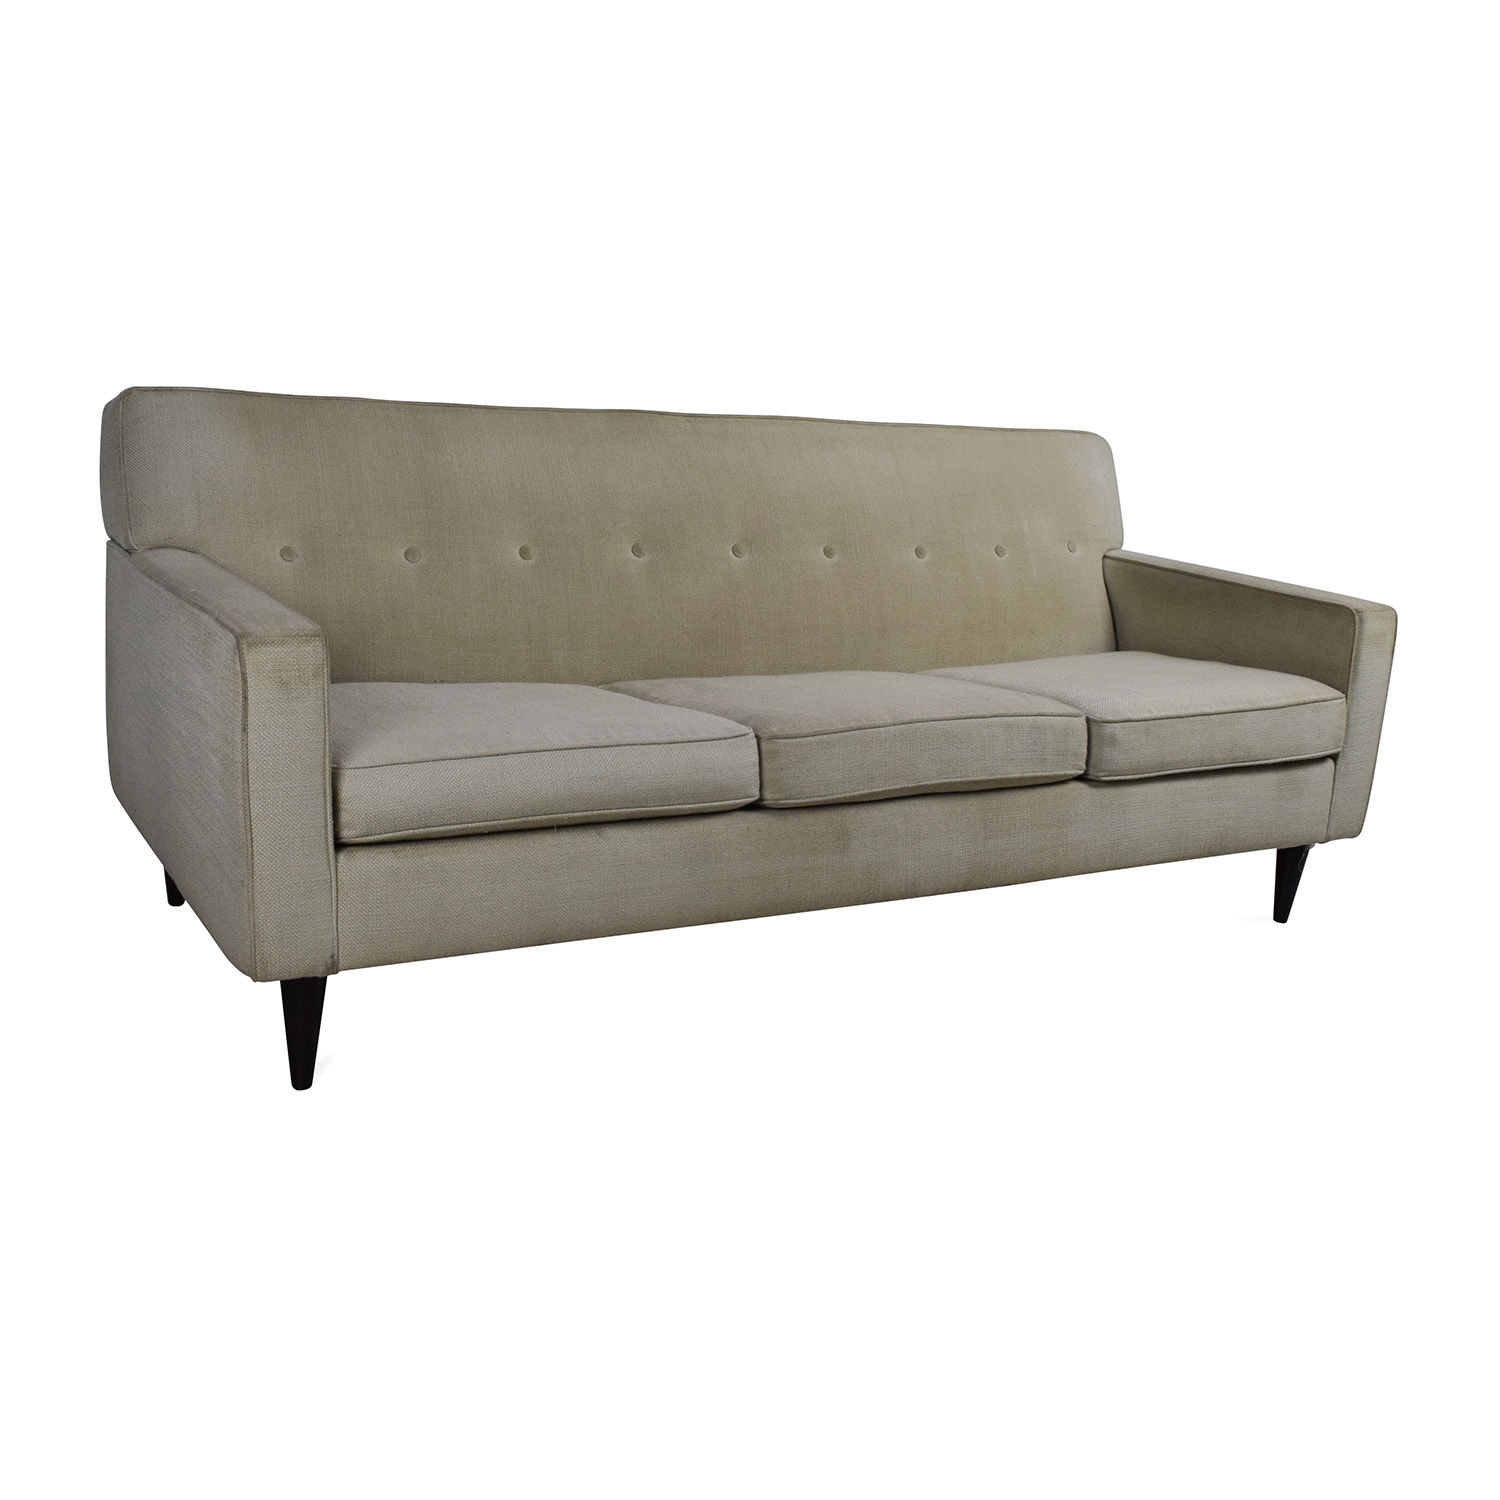 wonderful macy's furniture sofa collection-Stunning Macy's Furniture sofa Plan